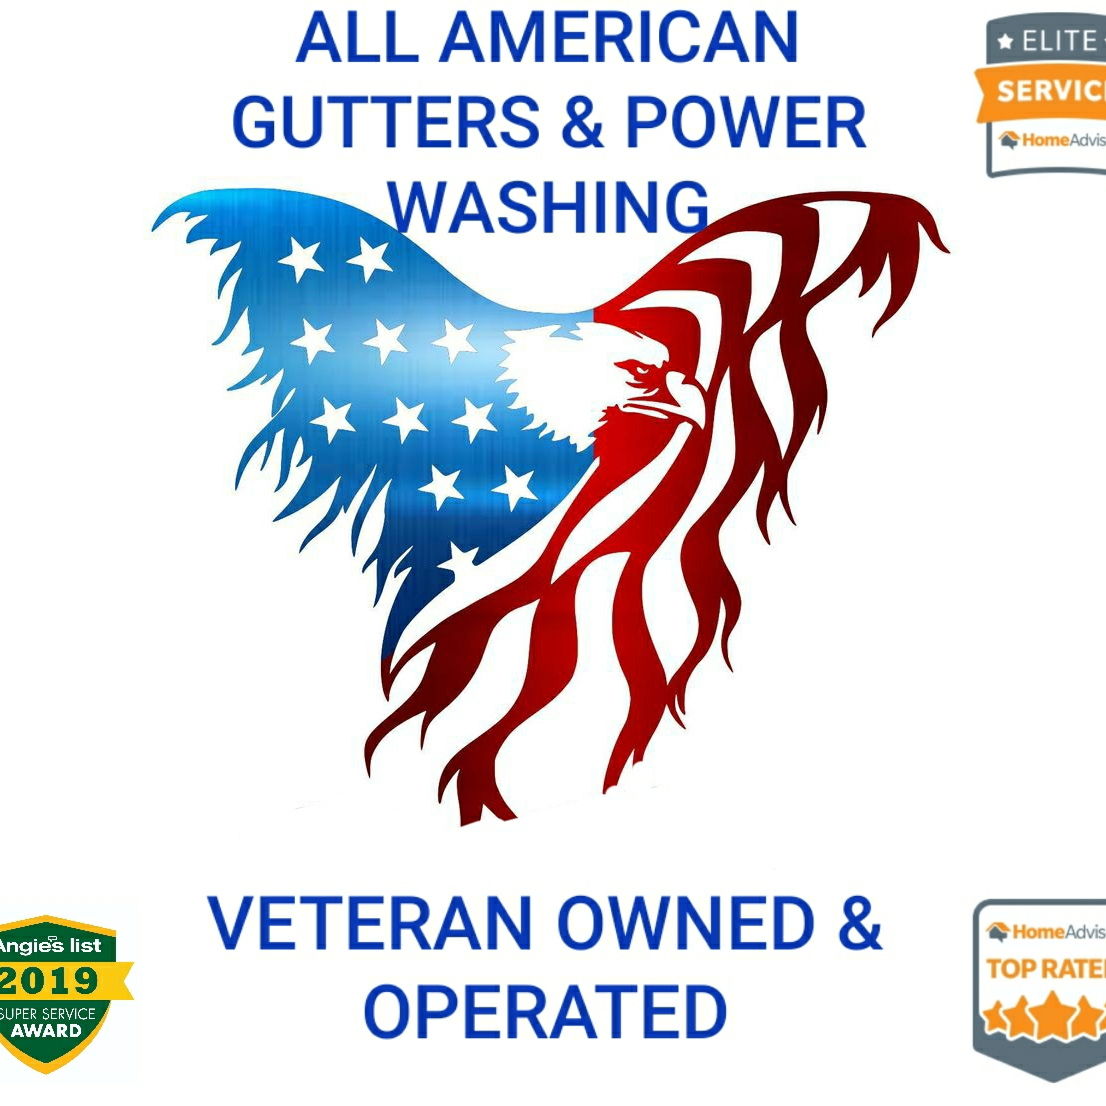 All American Gutters & Power Washing logo